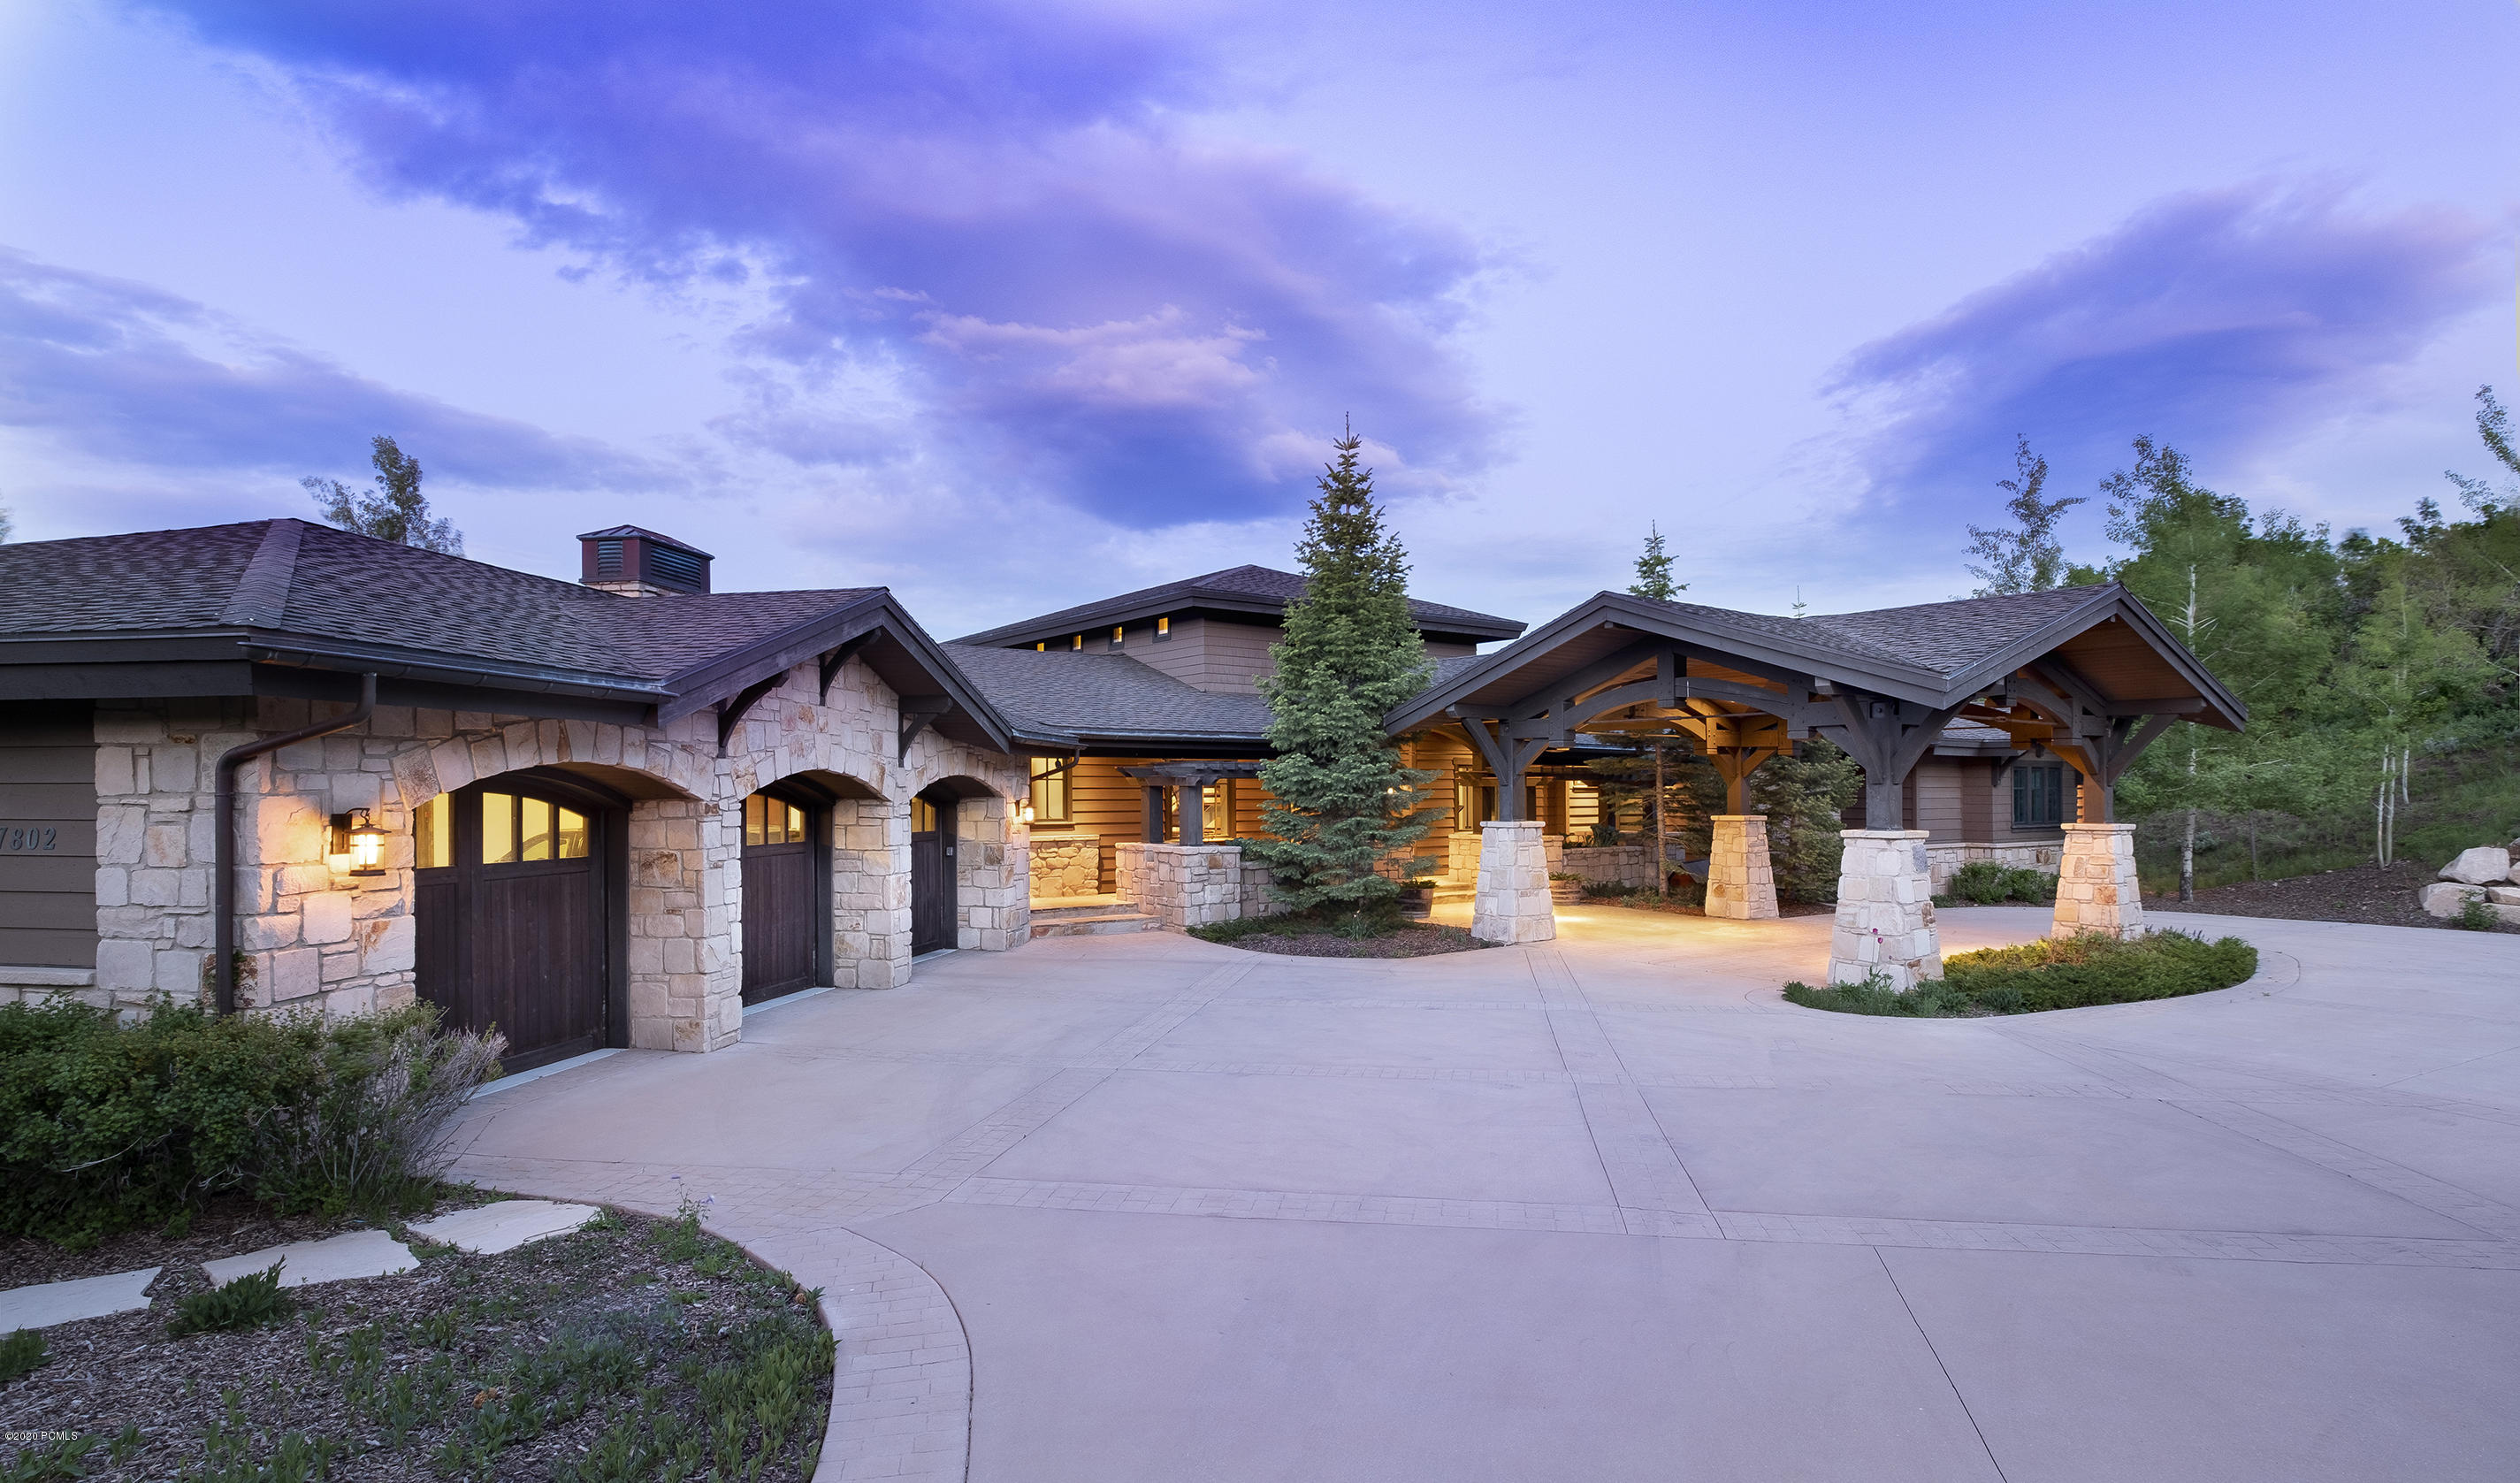 7802 Purple Sage, Park City, Utah 84098, 7 Bedrooms Bedrooms, ,9 BathroomsBathrooms,Single Family,For Sale,Purple Sage,20190109112430415765000000